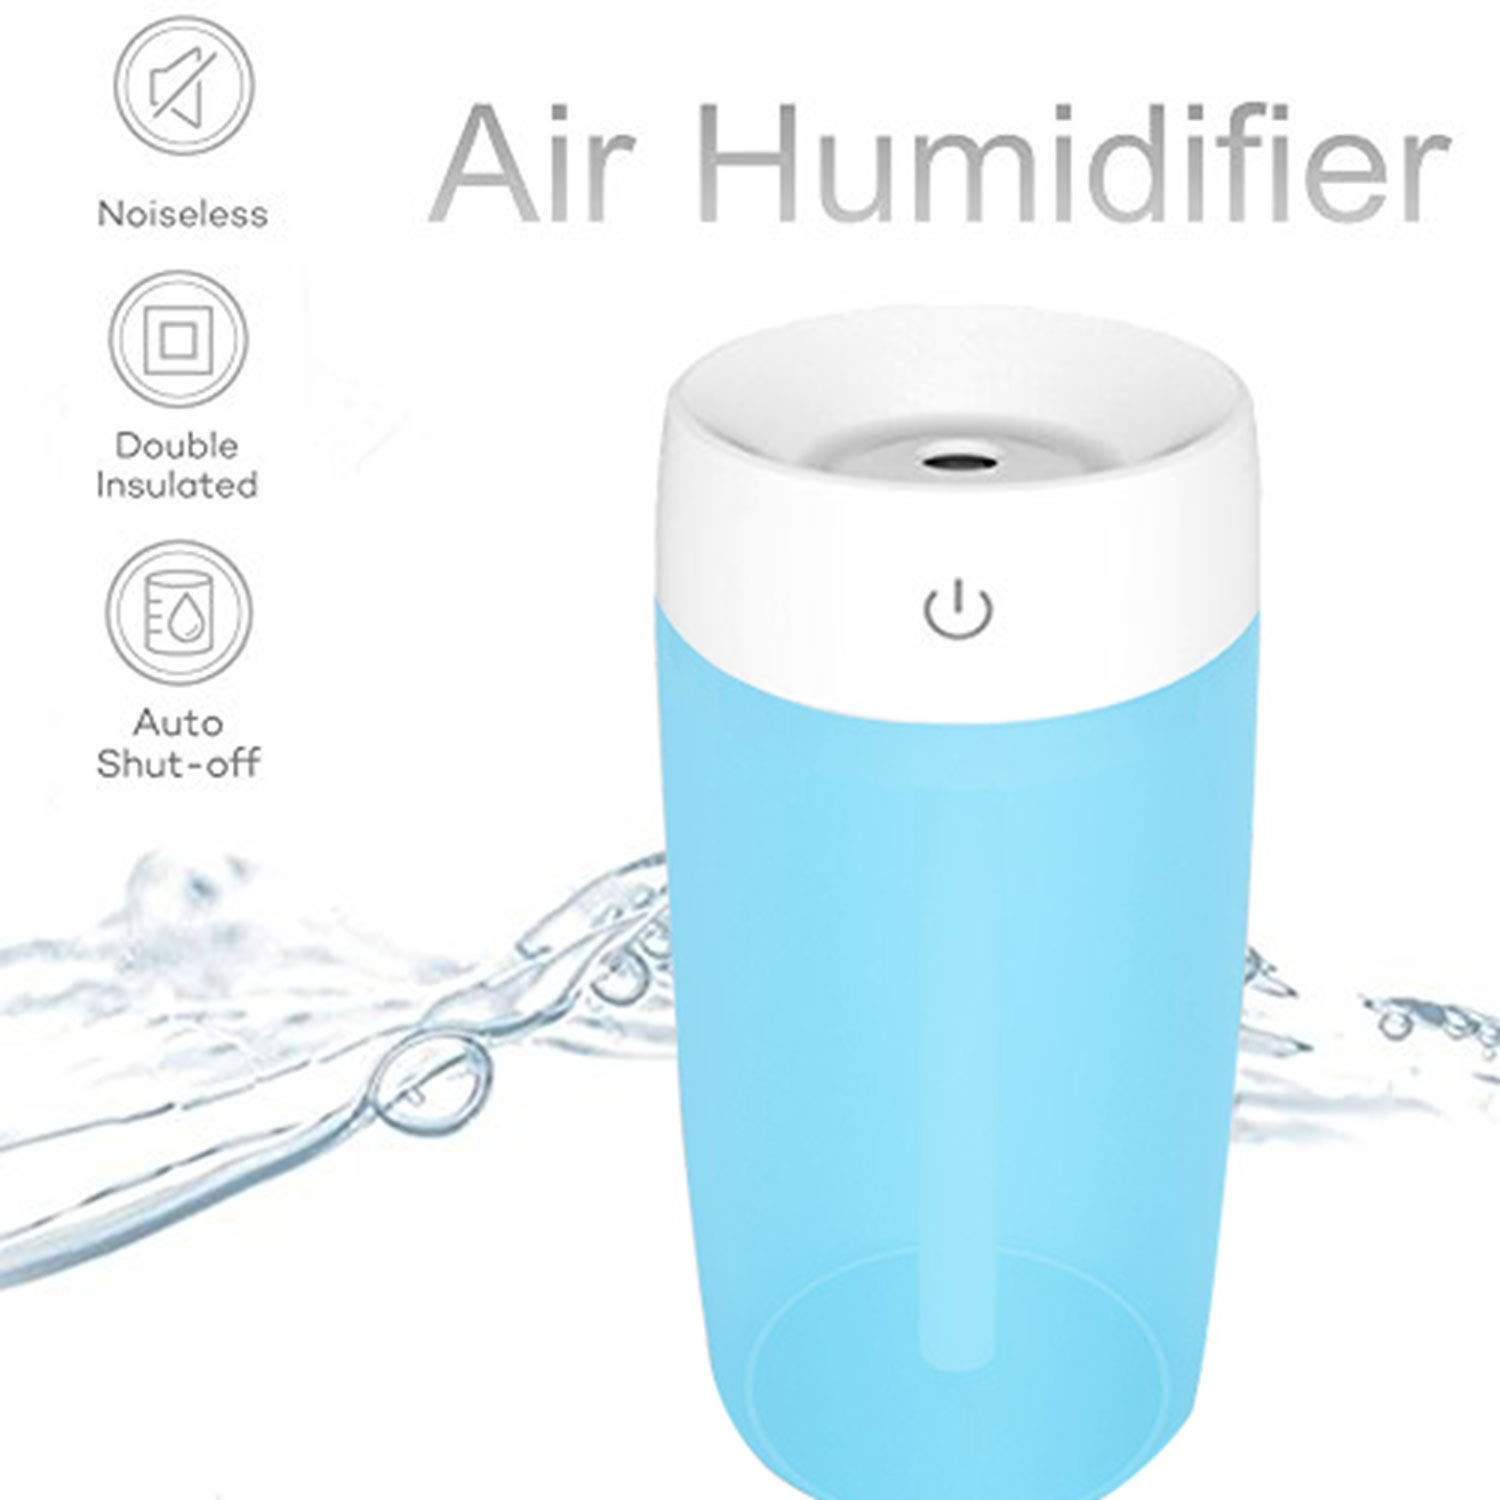 SIXONE Ultrasonic Cool Mist Humidifier 300ml Travel Mini Humidifier USB Powered Personal Portable Humidifiers Diffuser LED Light Air Humidifier with AUTO Shut-Off for Car Office Bedroom (Blue)